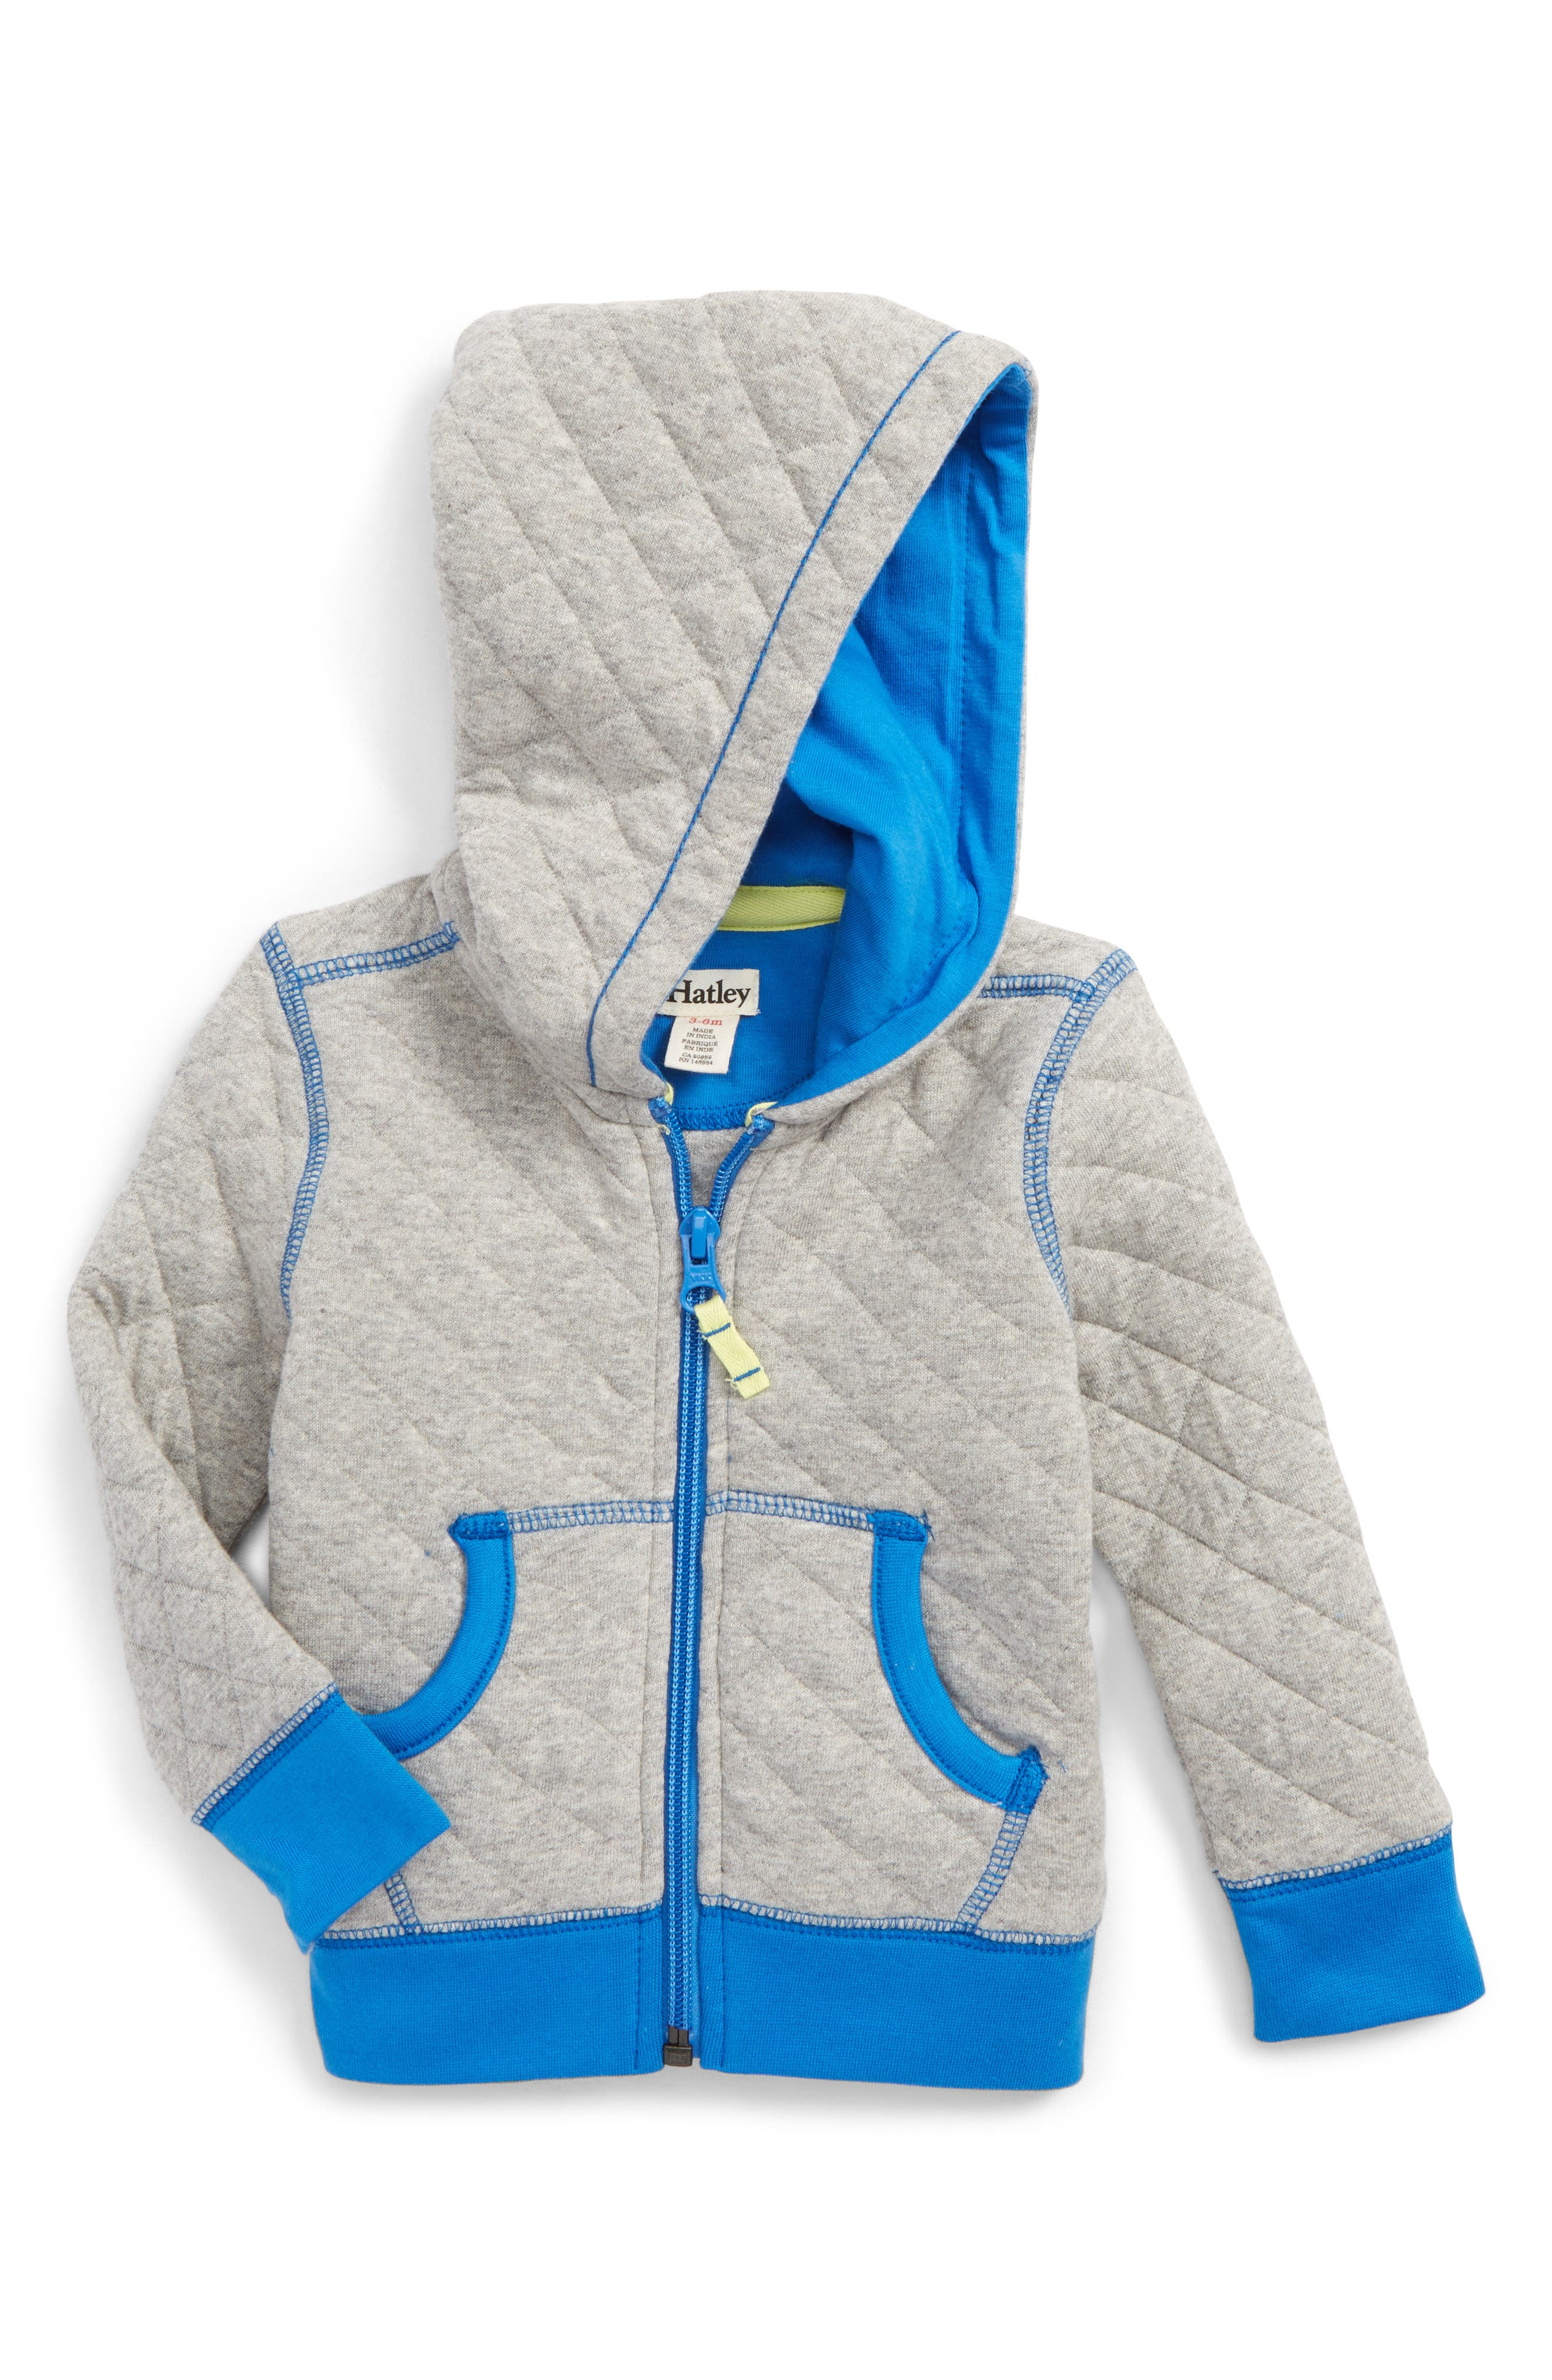 Alternate Image 1 Selected - Hatley Athletics Quilted Hoodie (Baby Boys)